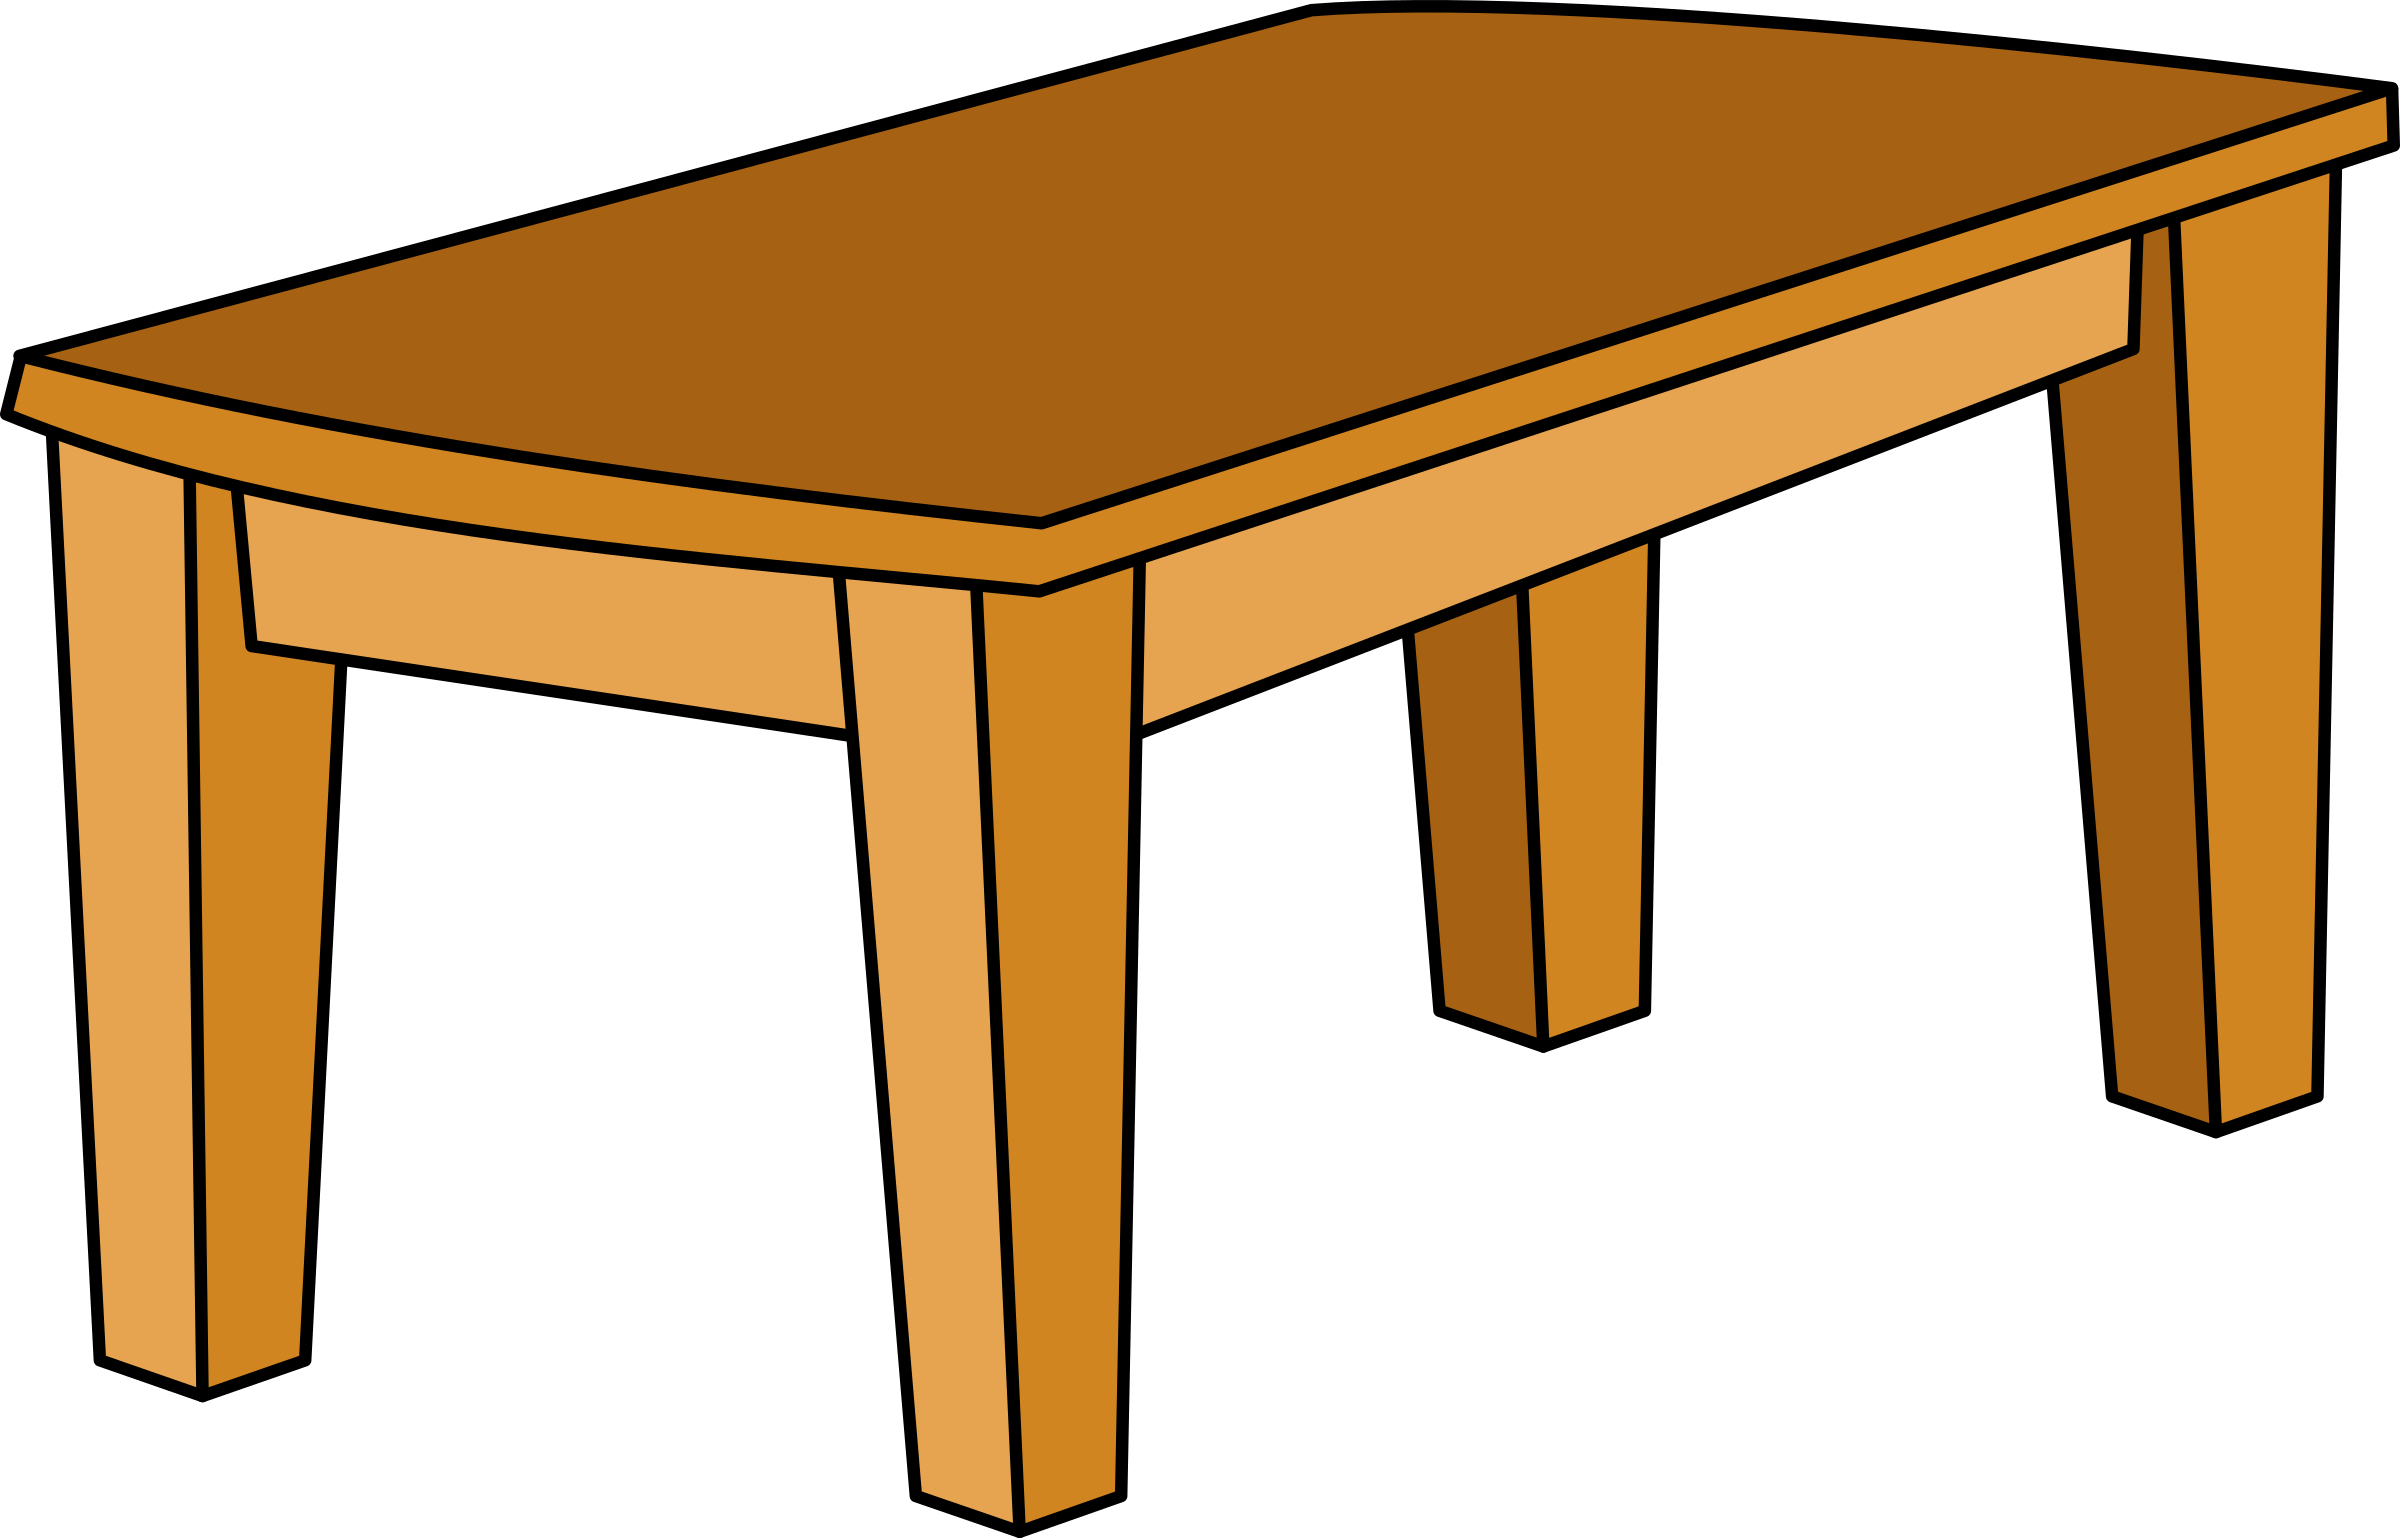 clipart freeuse Table mesa free on. Castle clipart dining room.